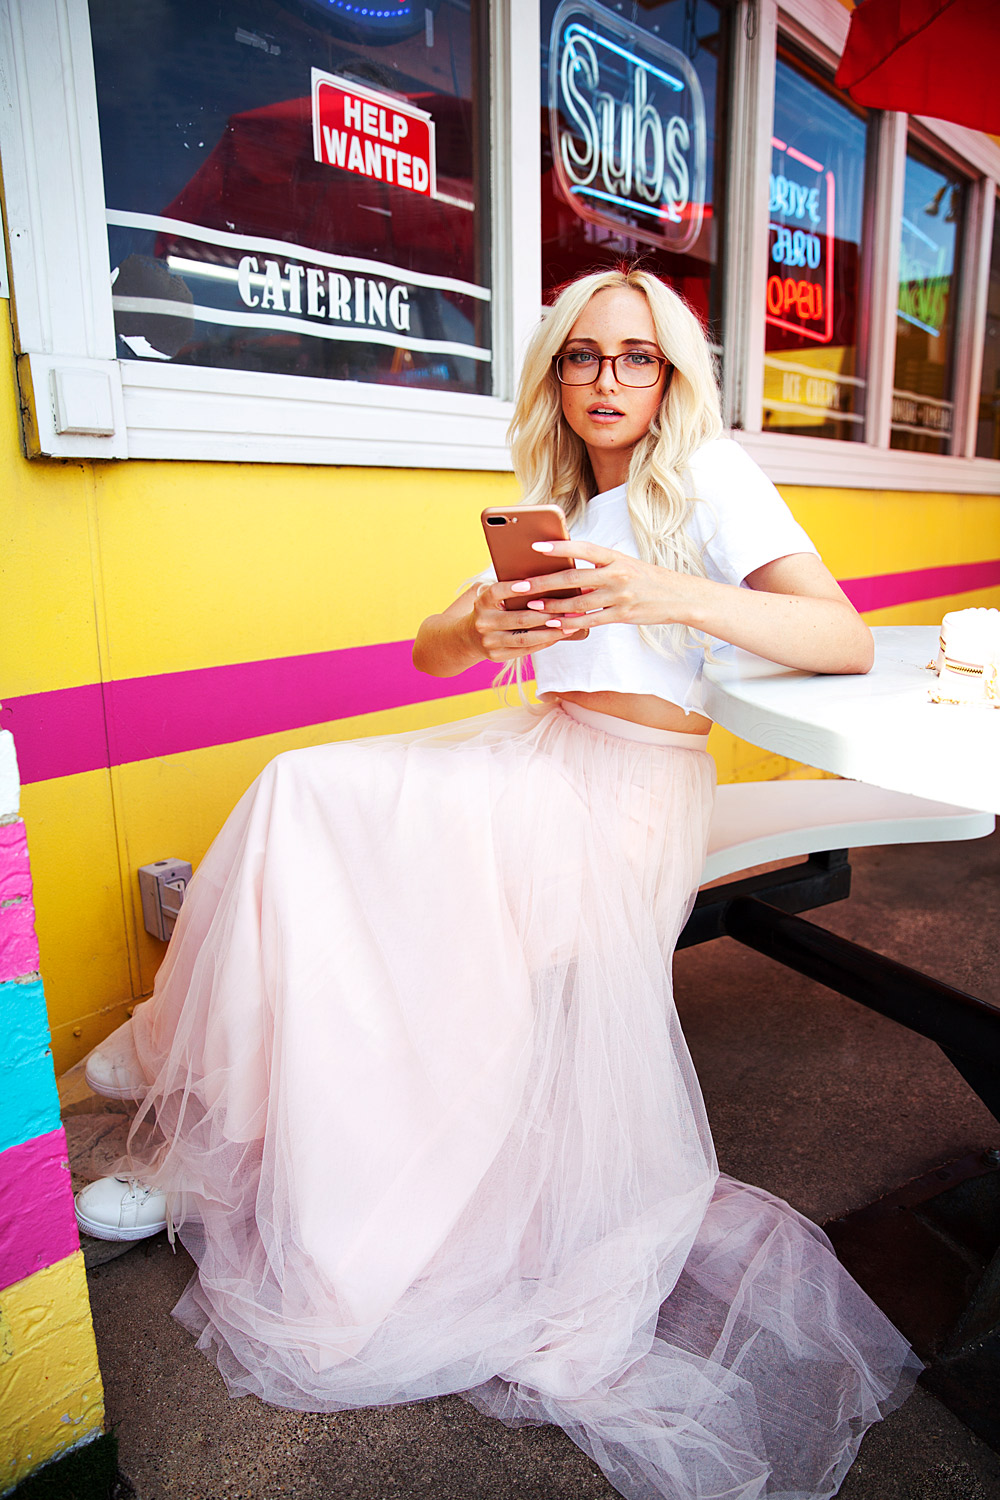 Rachel Page wears Tulle skirt & tshirt combo while texting outside a cute vintage restaurant.